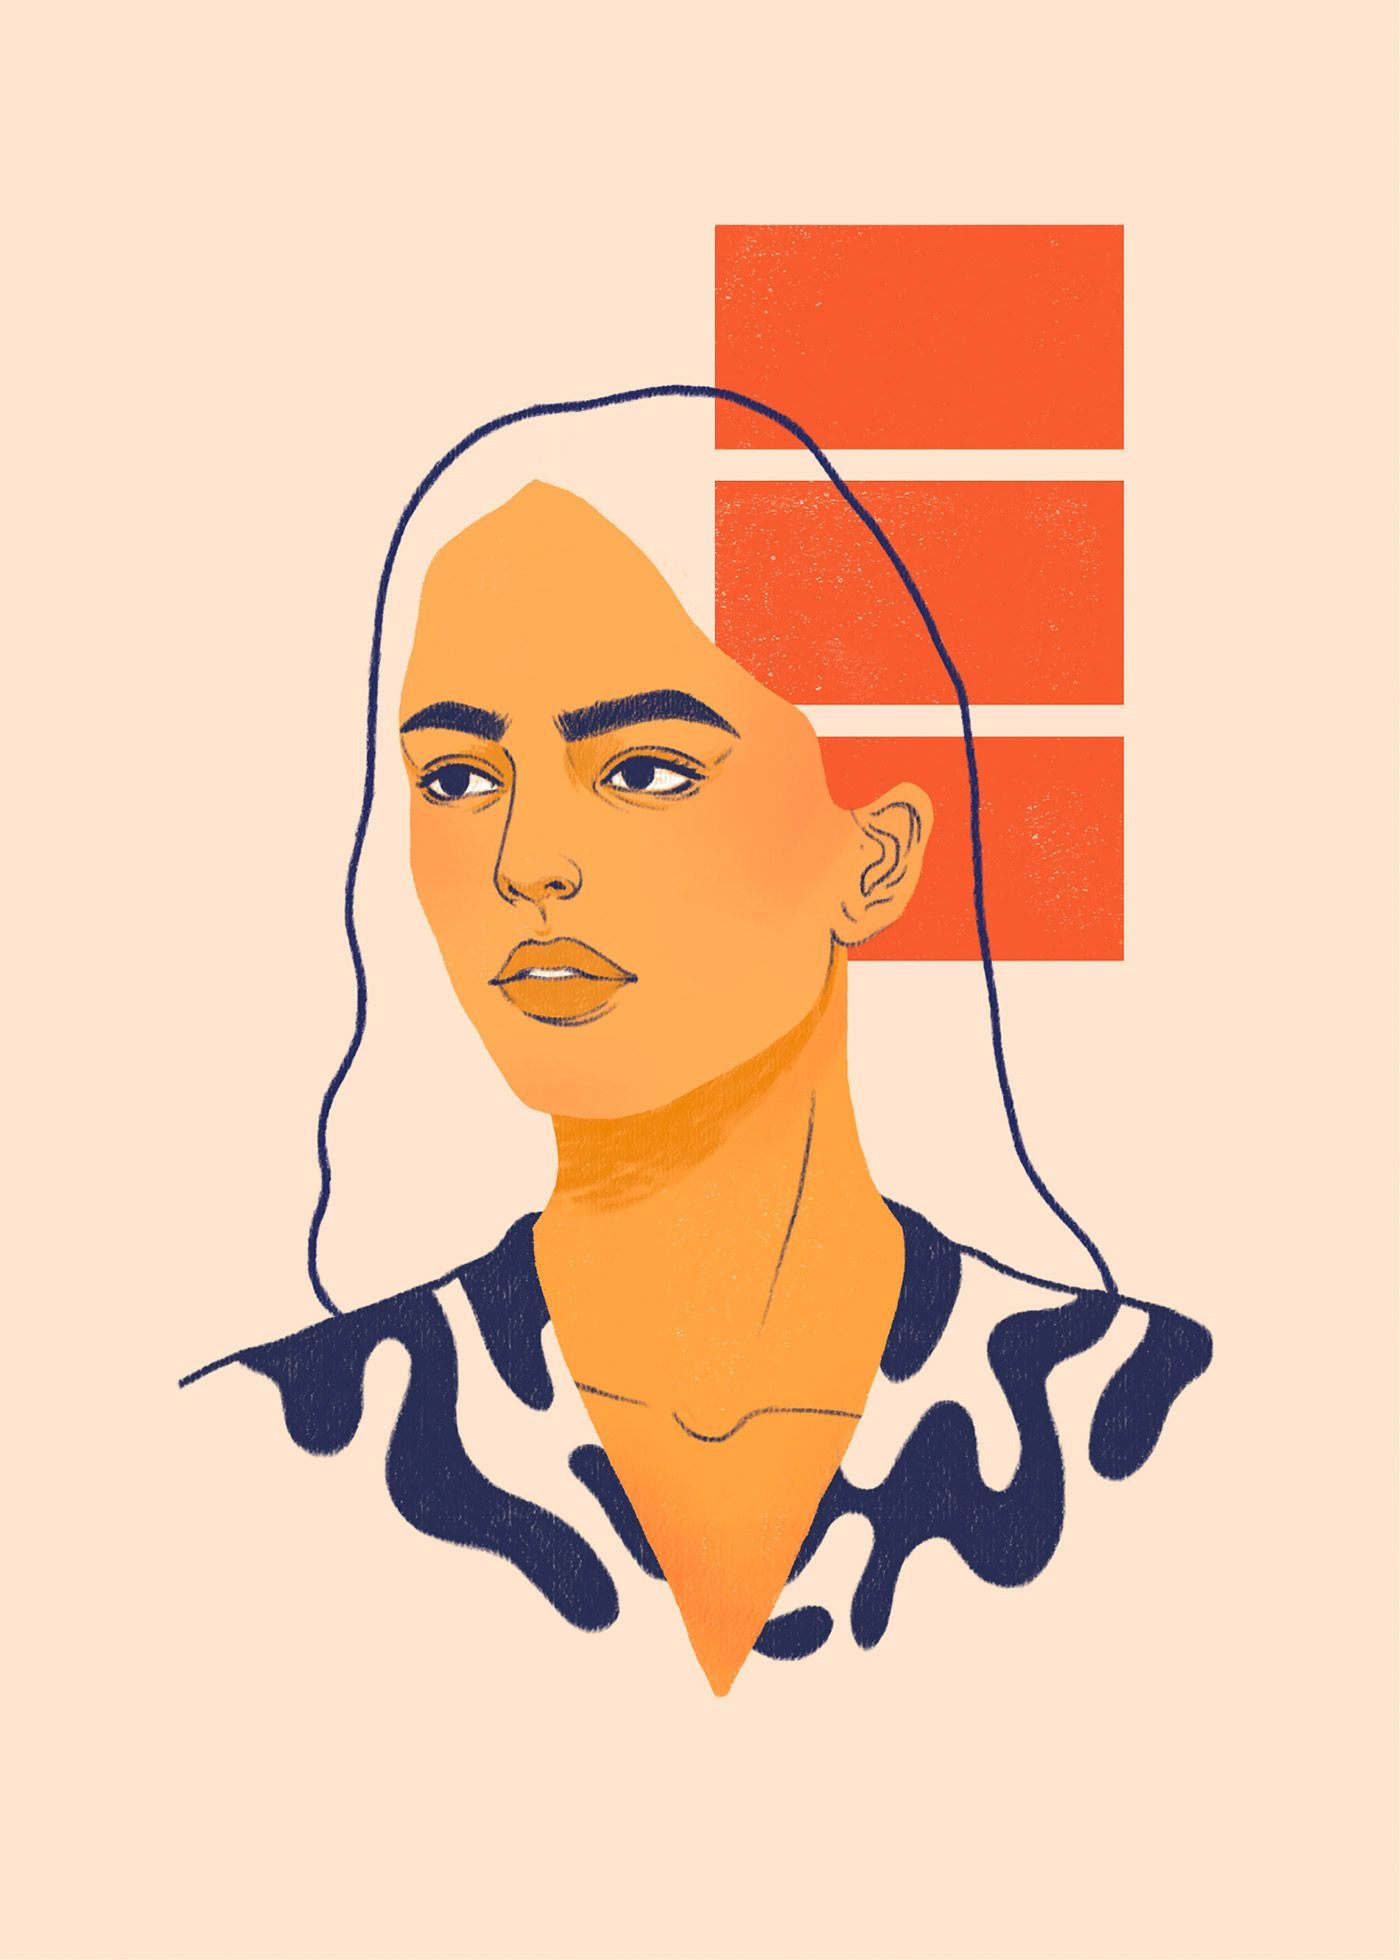 Visualizing Emotions: Illustrations by Suzanne Dias | Inspiration Grid  #emotions #Illustrationdesign #illustrations #inspiration #suzanne #visualizing